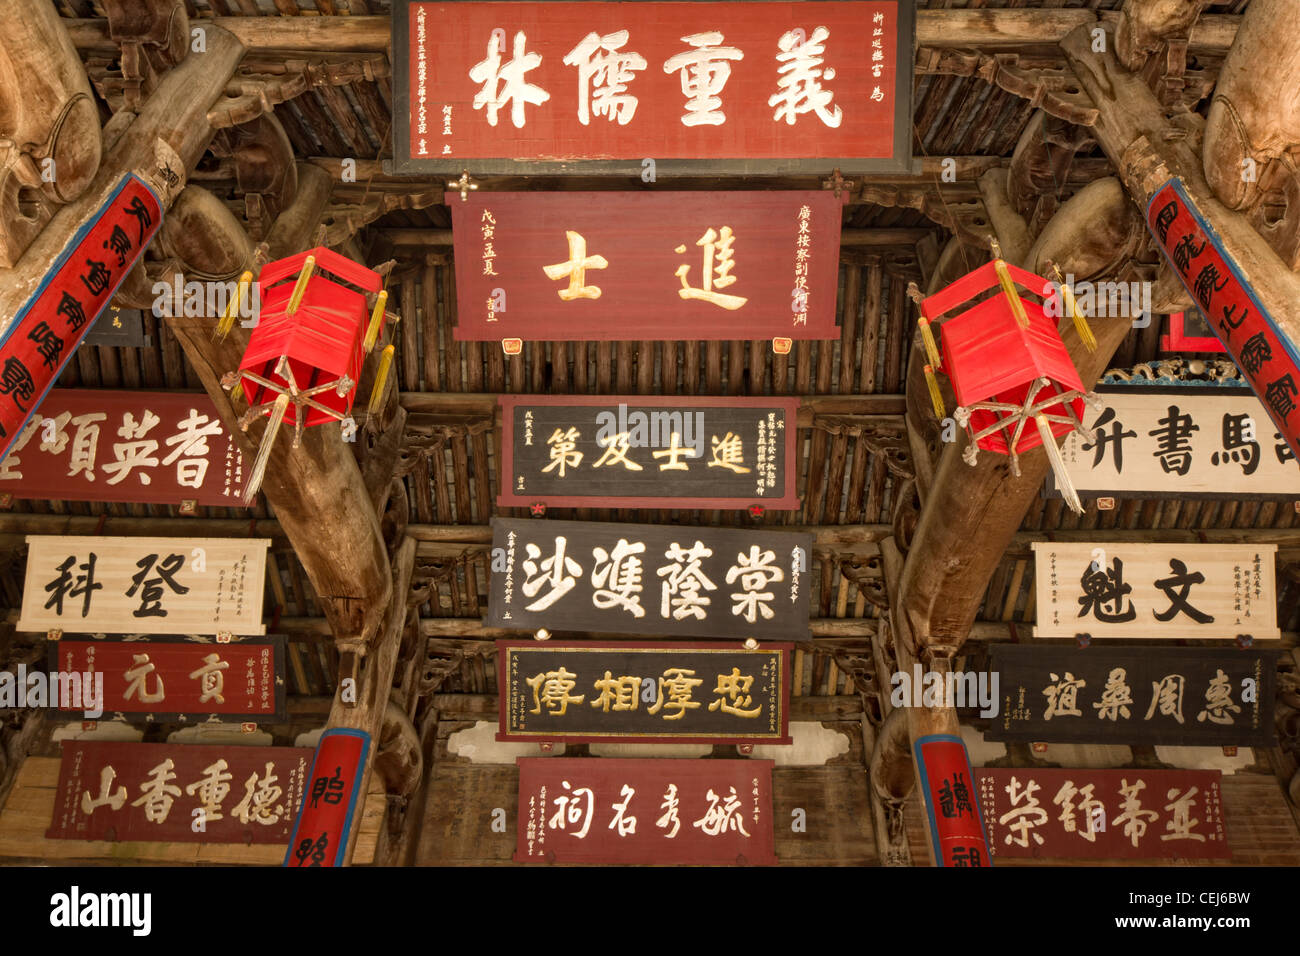 Multiple Ancient Inscribed boards hanging in a ancestral hall, Village of Guodong, Zhejiang, China - Stock Image